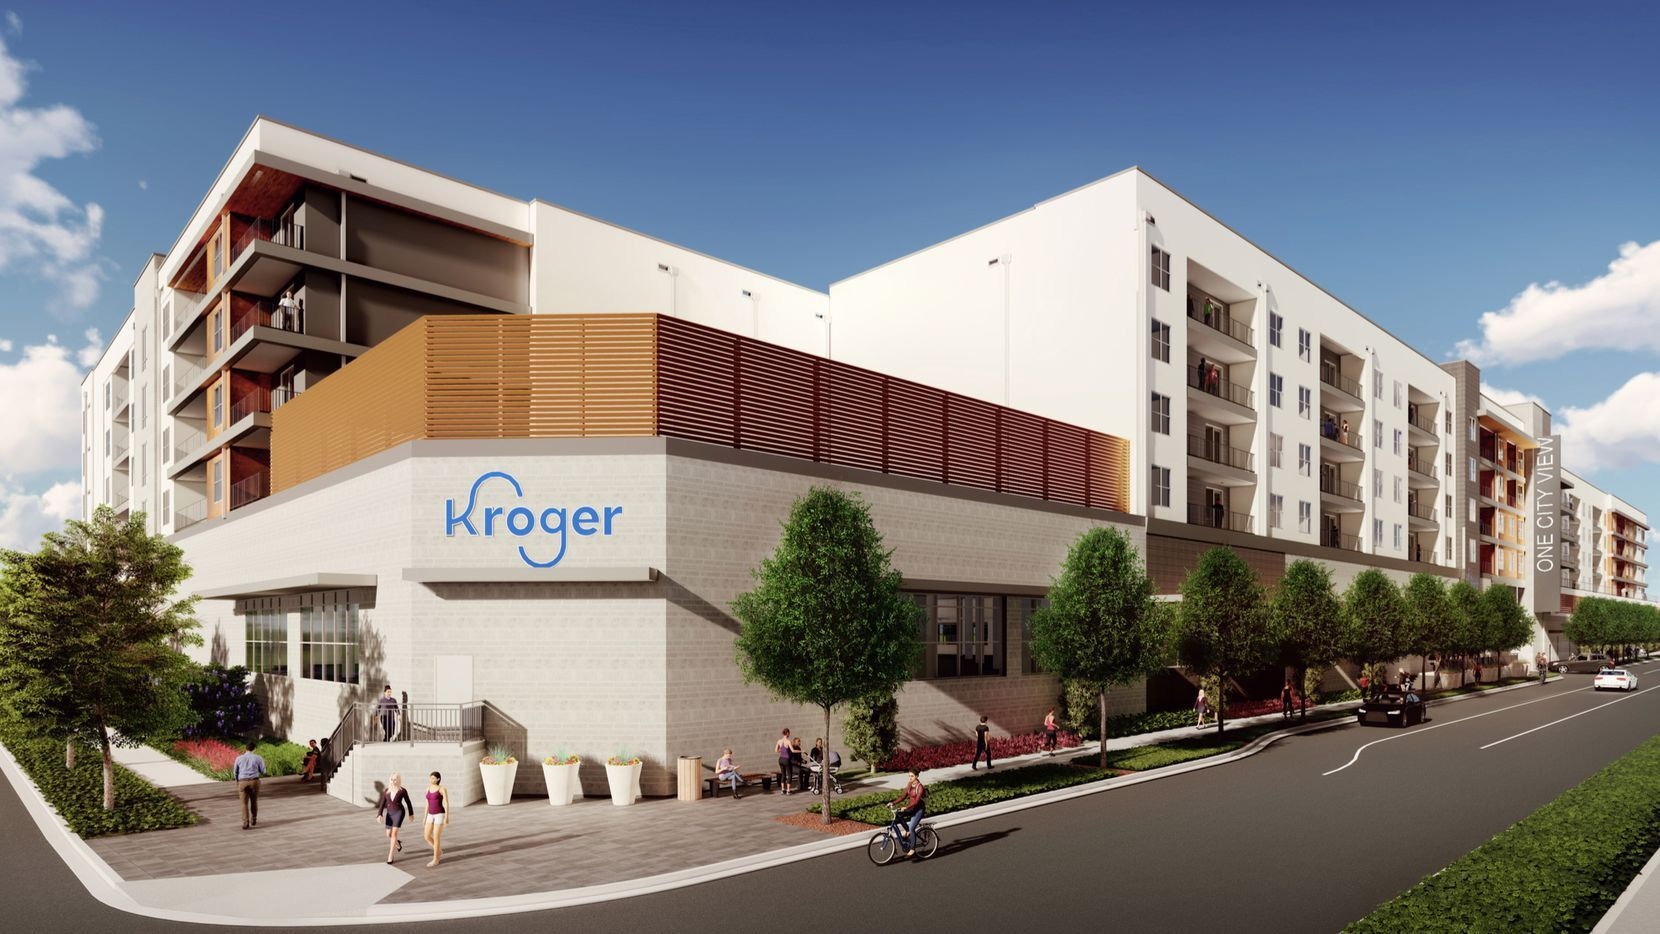 Kroger is planning a new supermarket in the One City View development northeast of downtown on Hall Street. Four levels of apartments will sit on top of the store.